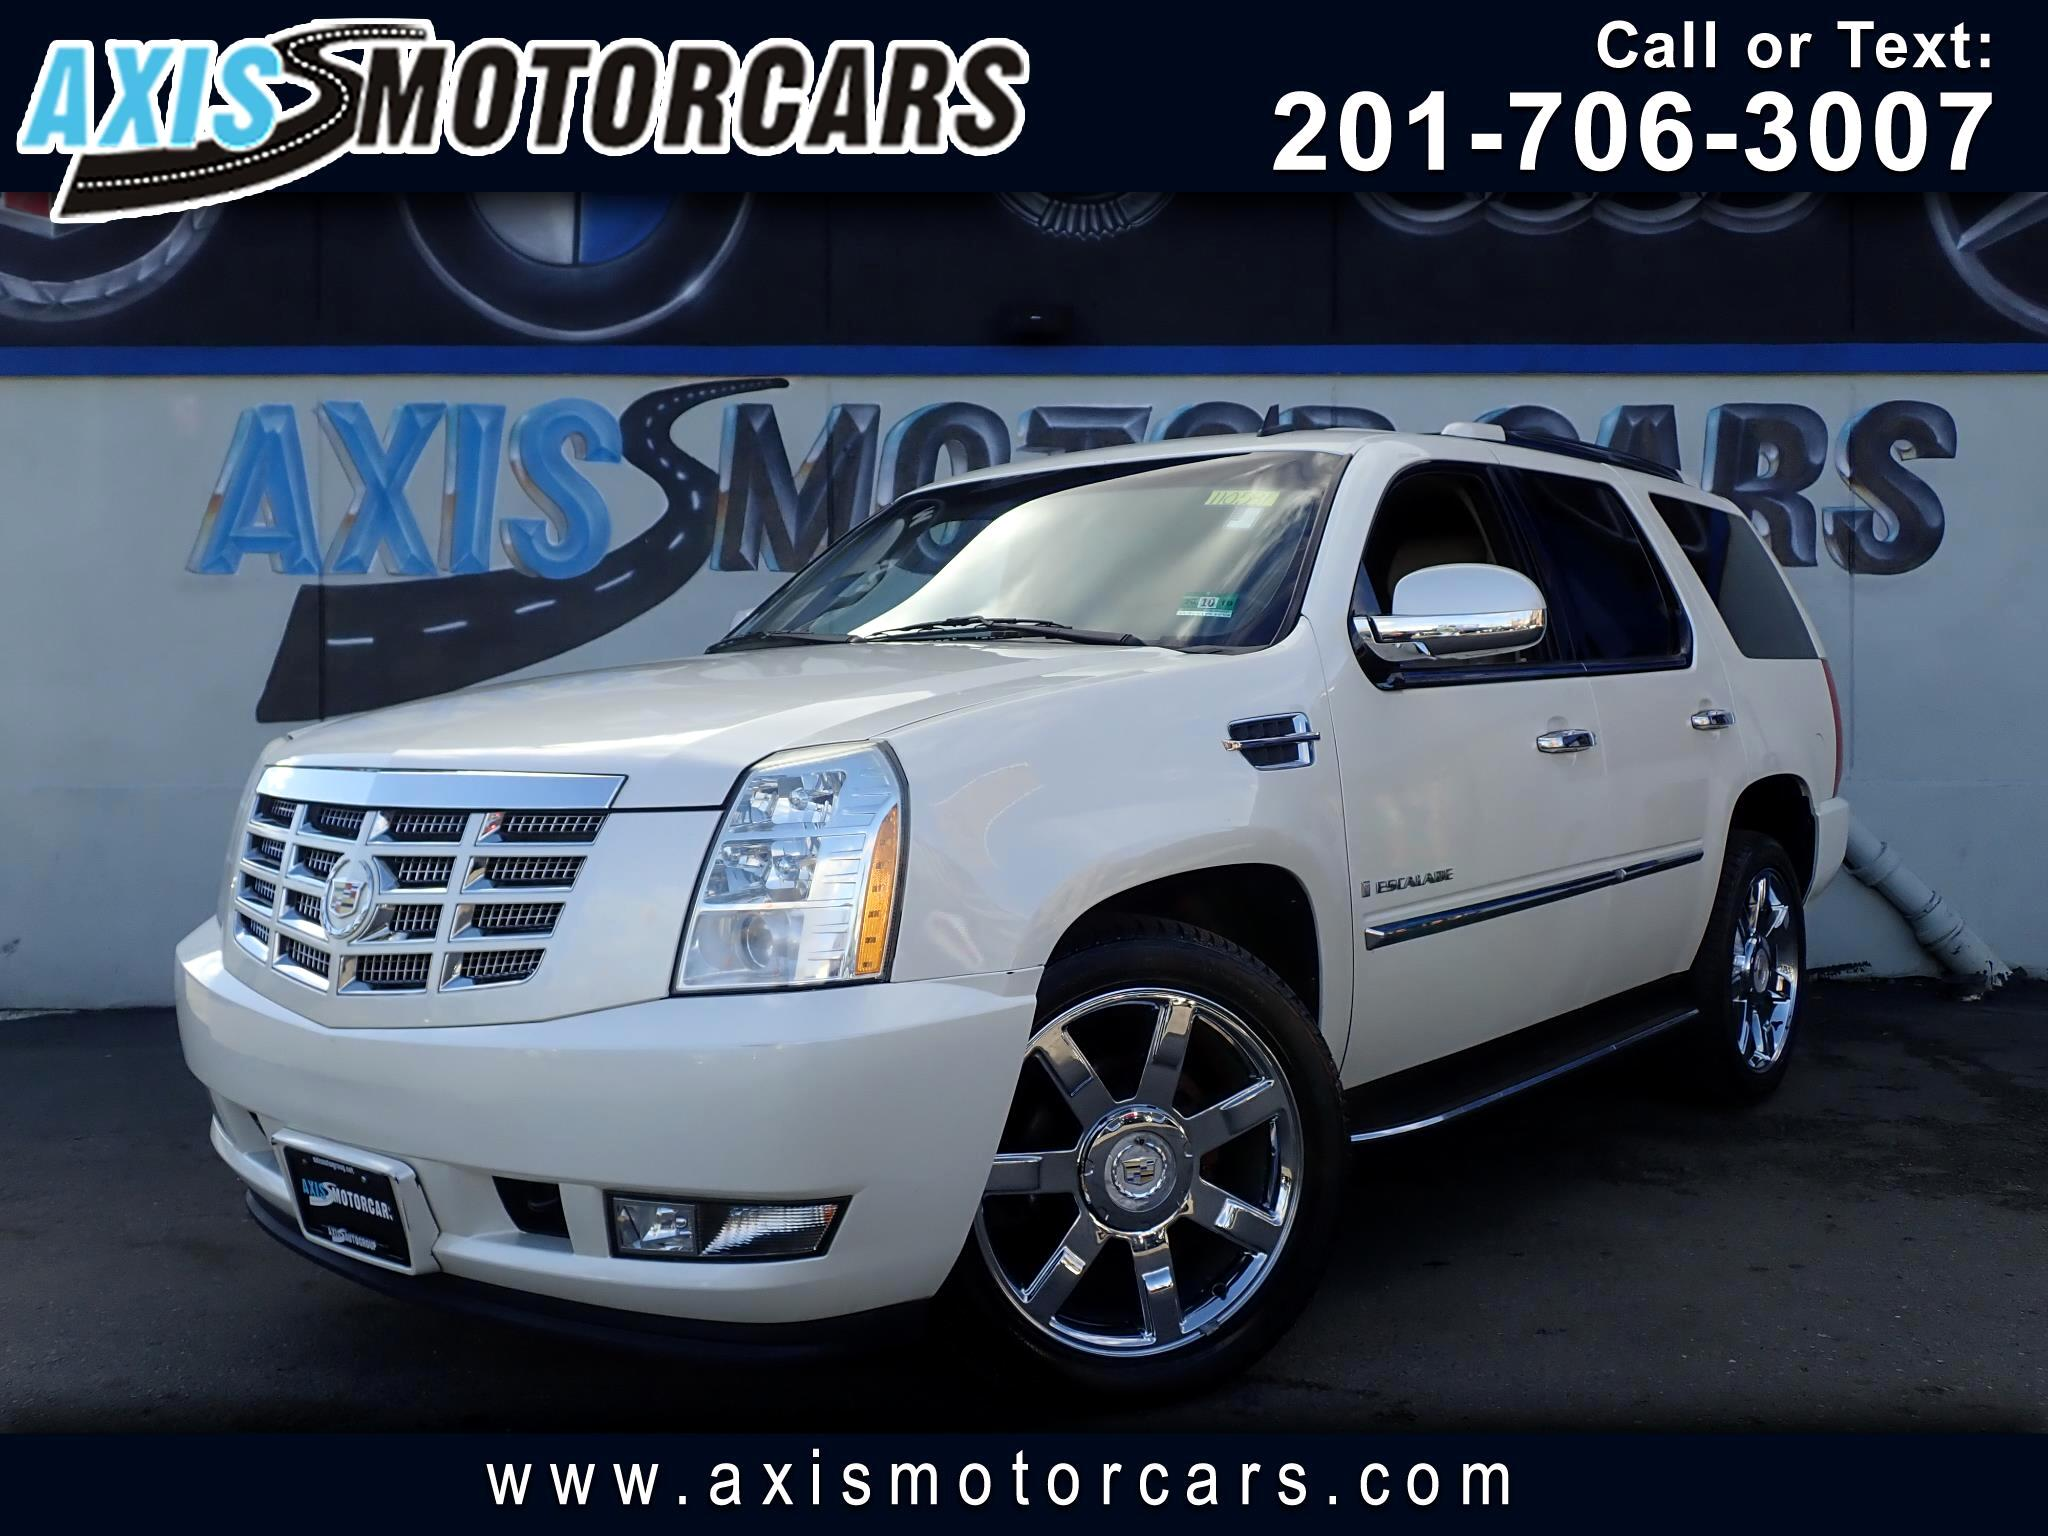 Used 2009 Cadillac Escalade For Sale In Jersey City Nj 07305 Axis